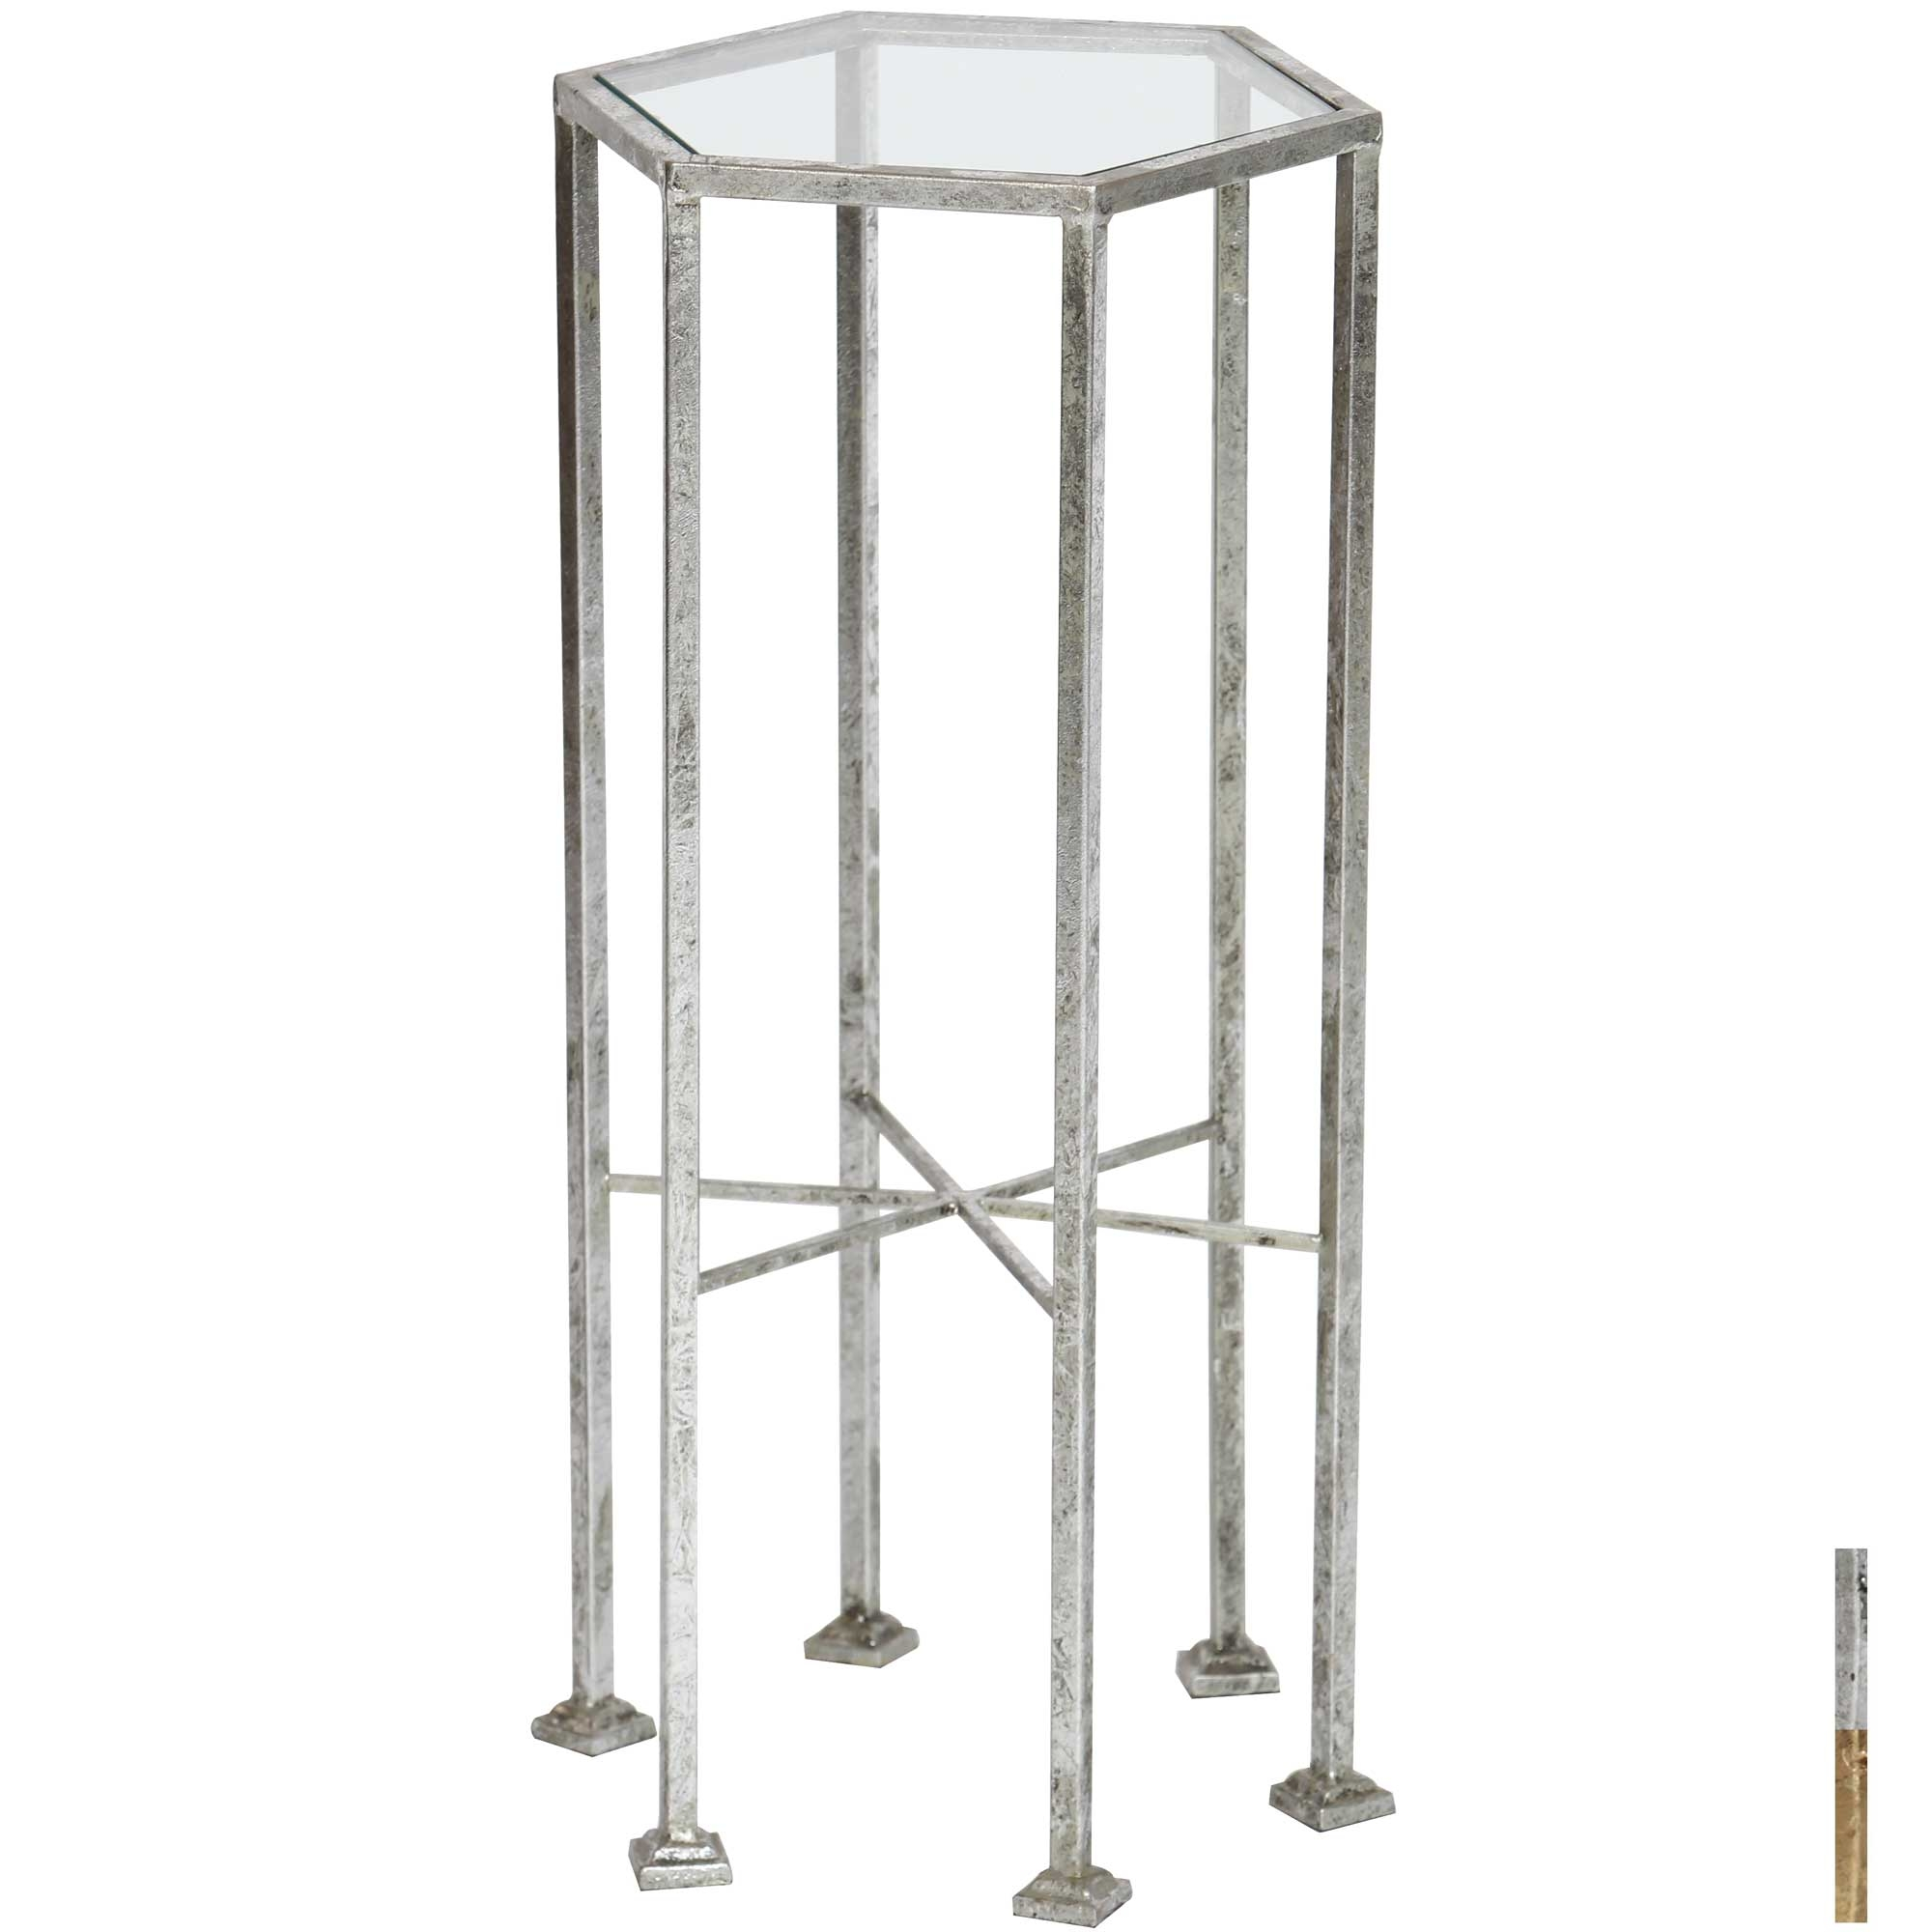 esher accent table timeless wrought iron twi tables glass top larger cool drum thrones battery operated indoor lights short narrow console and lamp combo country cottage coffee